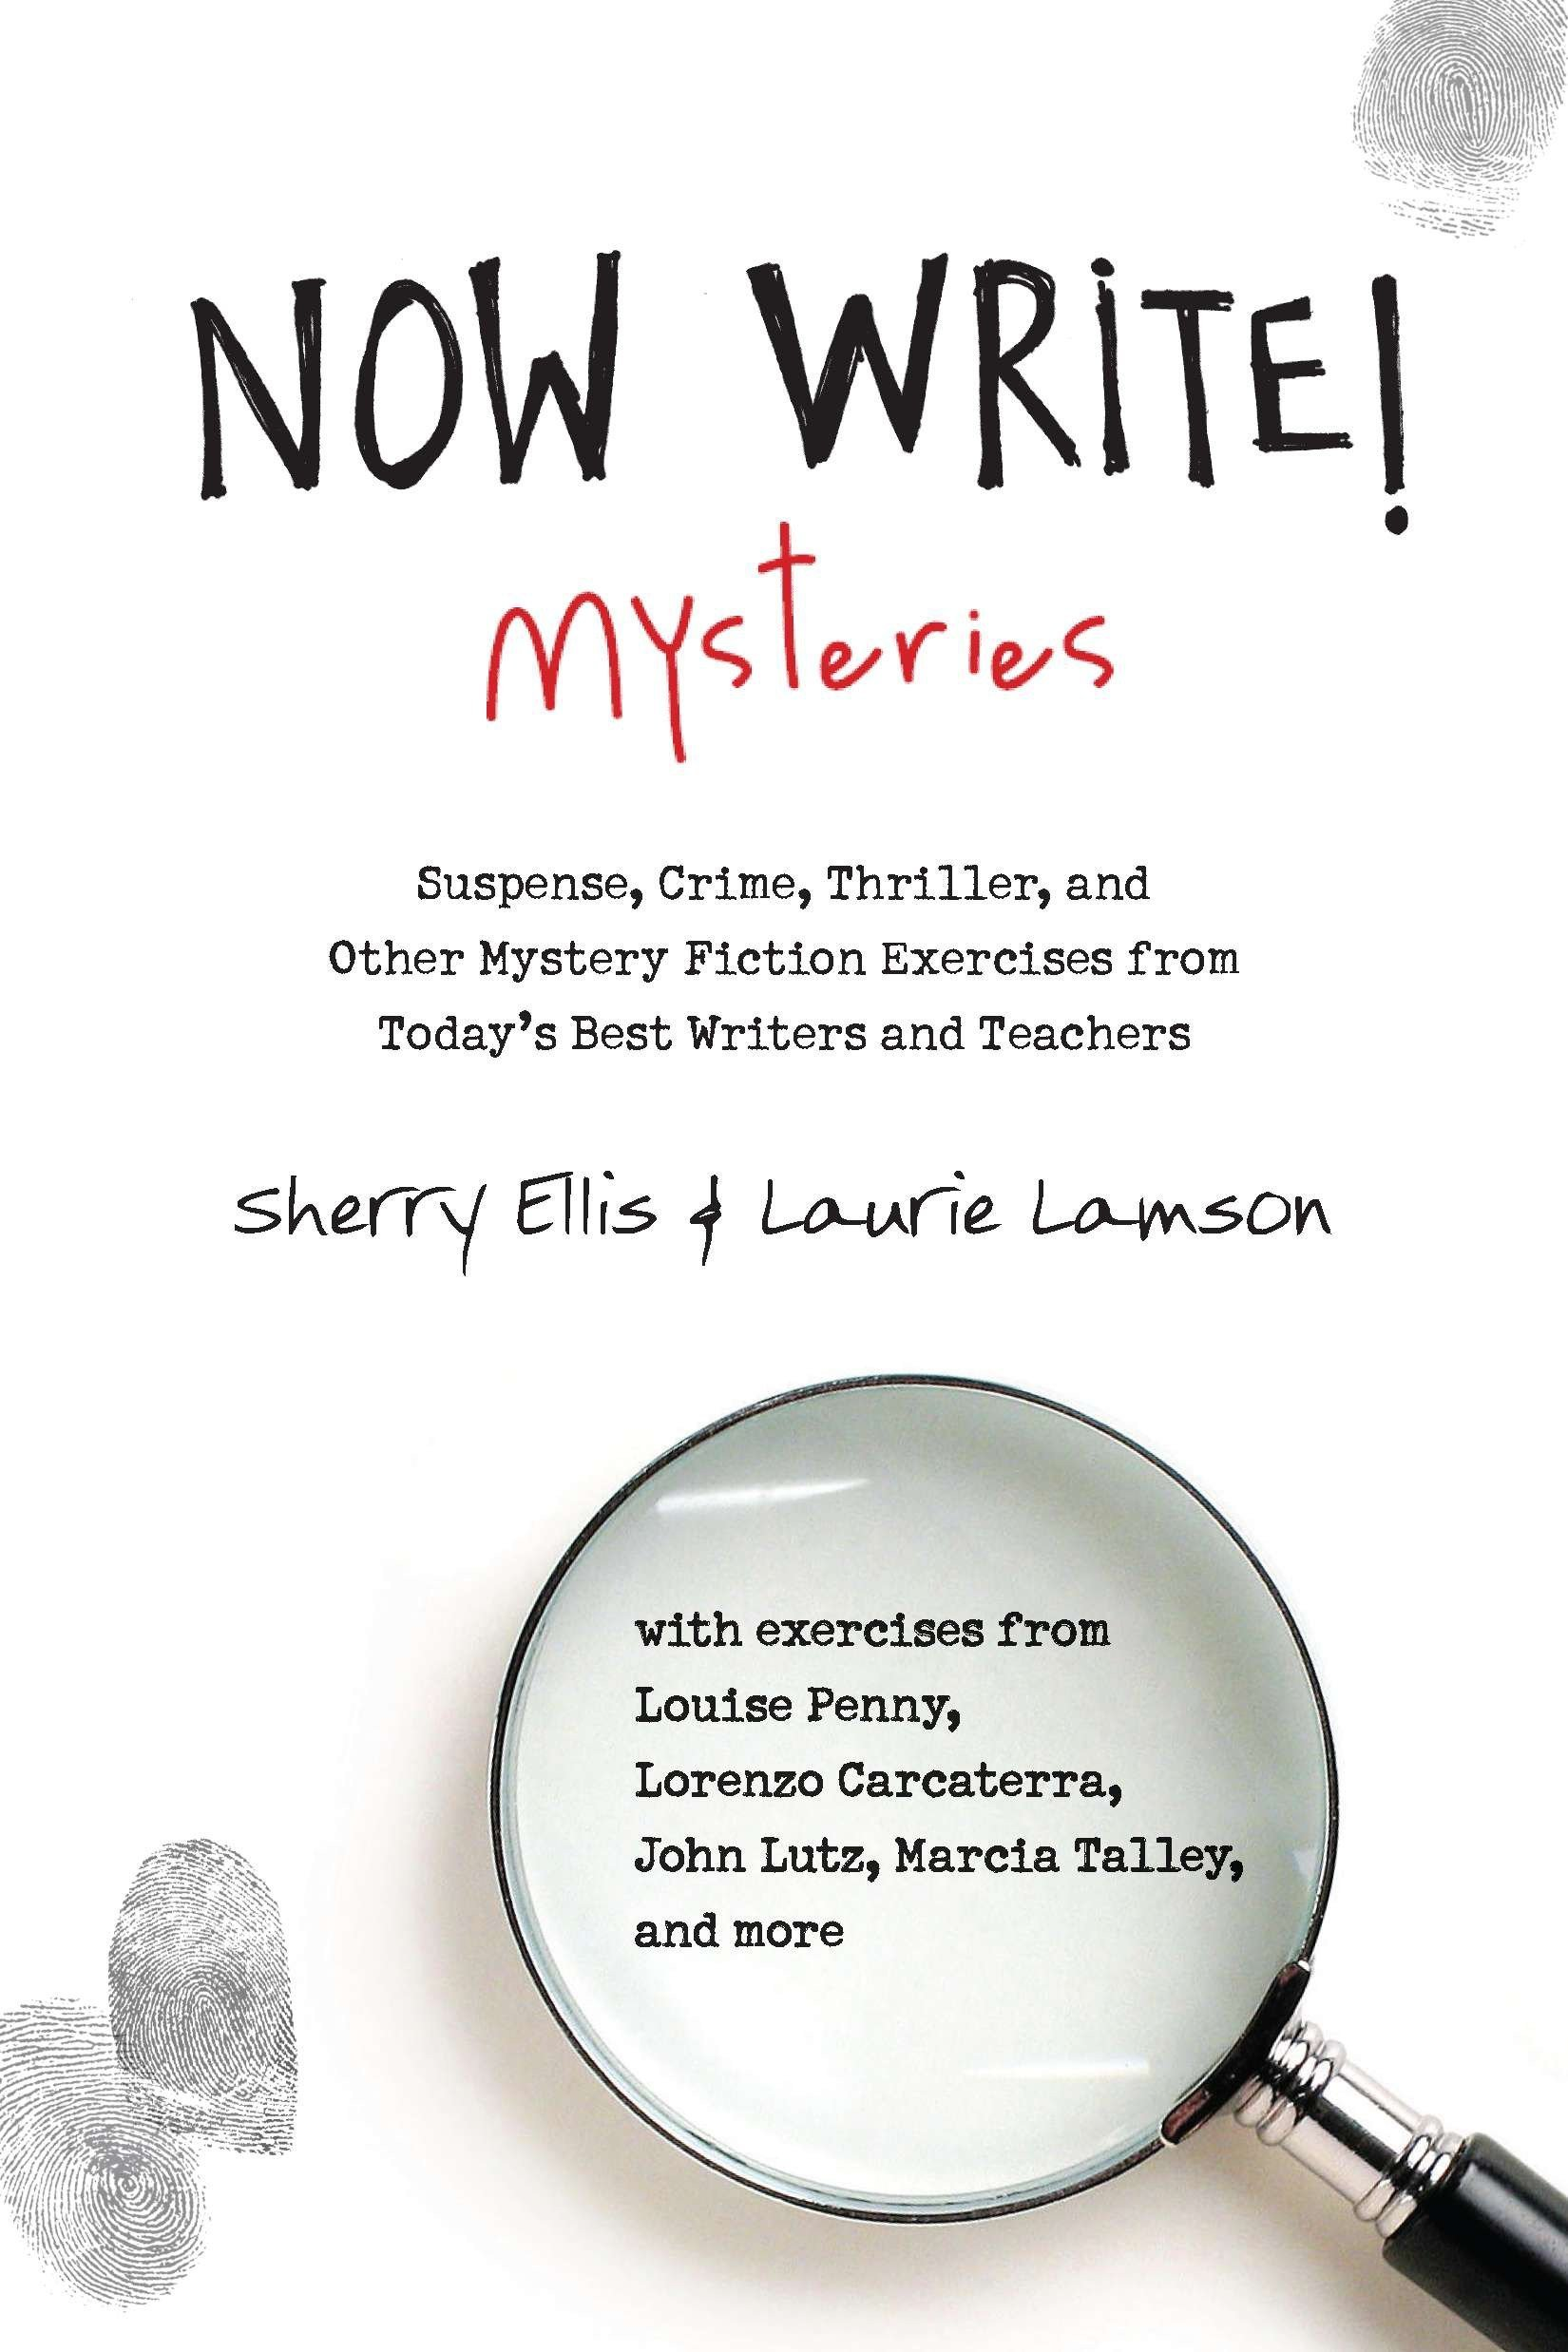 Now Write! Mysteries: Suspense, Crime, Thriller, and Other Mystery Fiction Exercises from Today's Best  Writers and Teachers (Now Write! Series) by TarcherPerigee